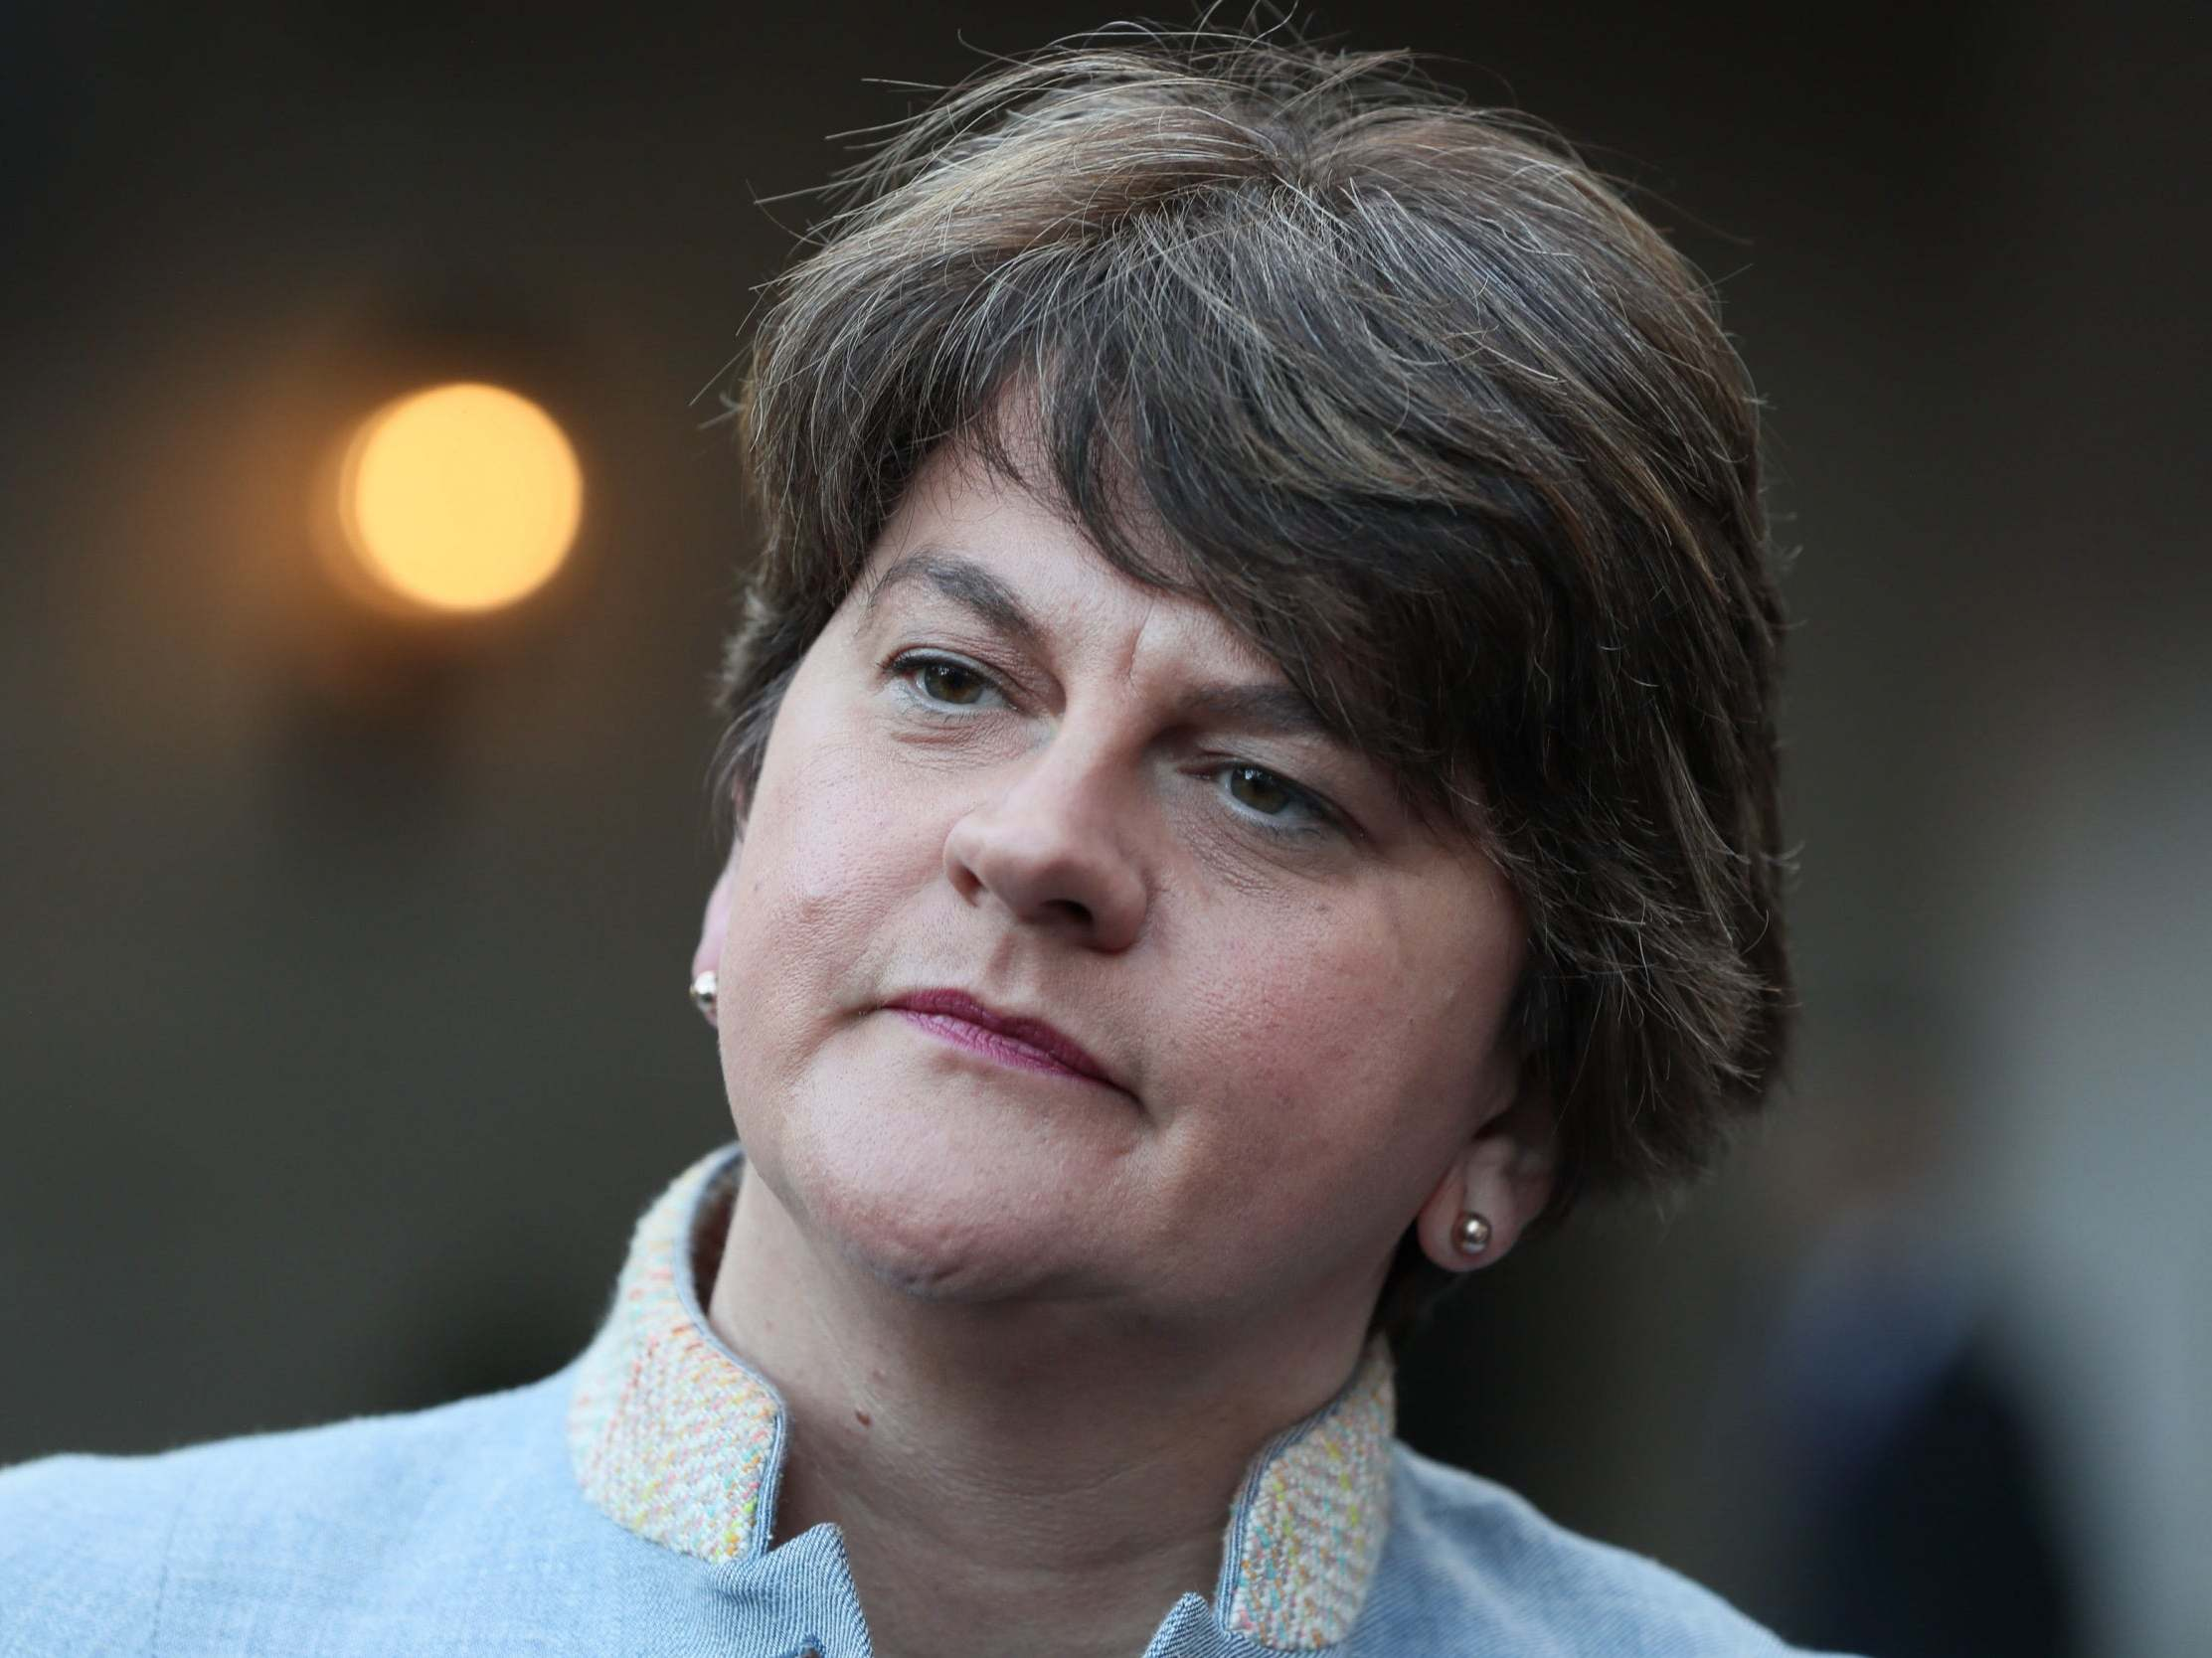 DUP says it will not support Boris Johnson's Brexit deal in parliament